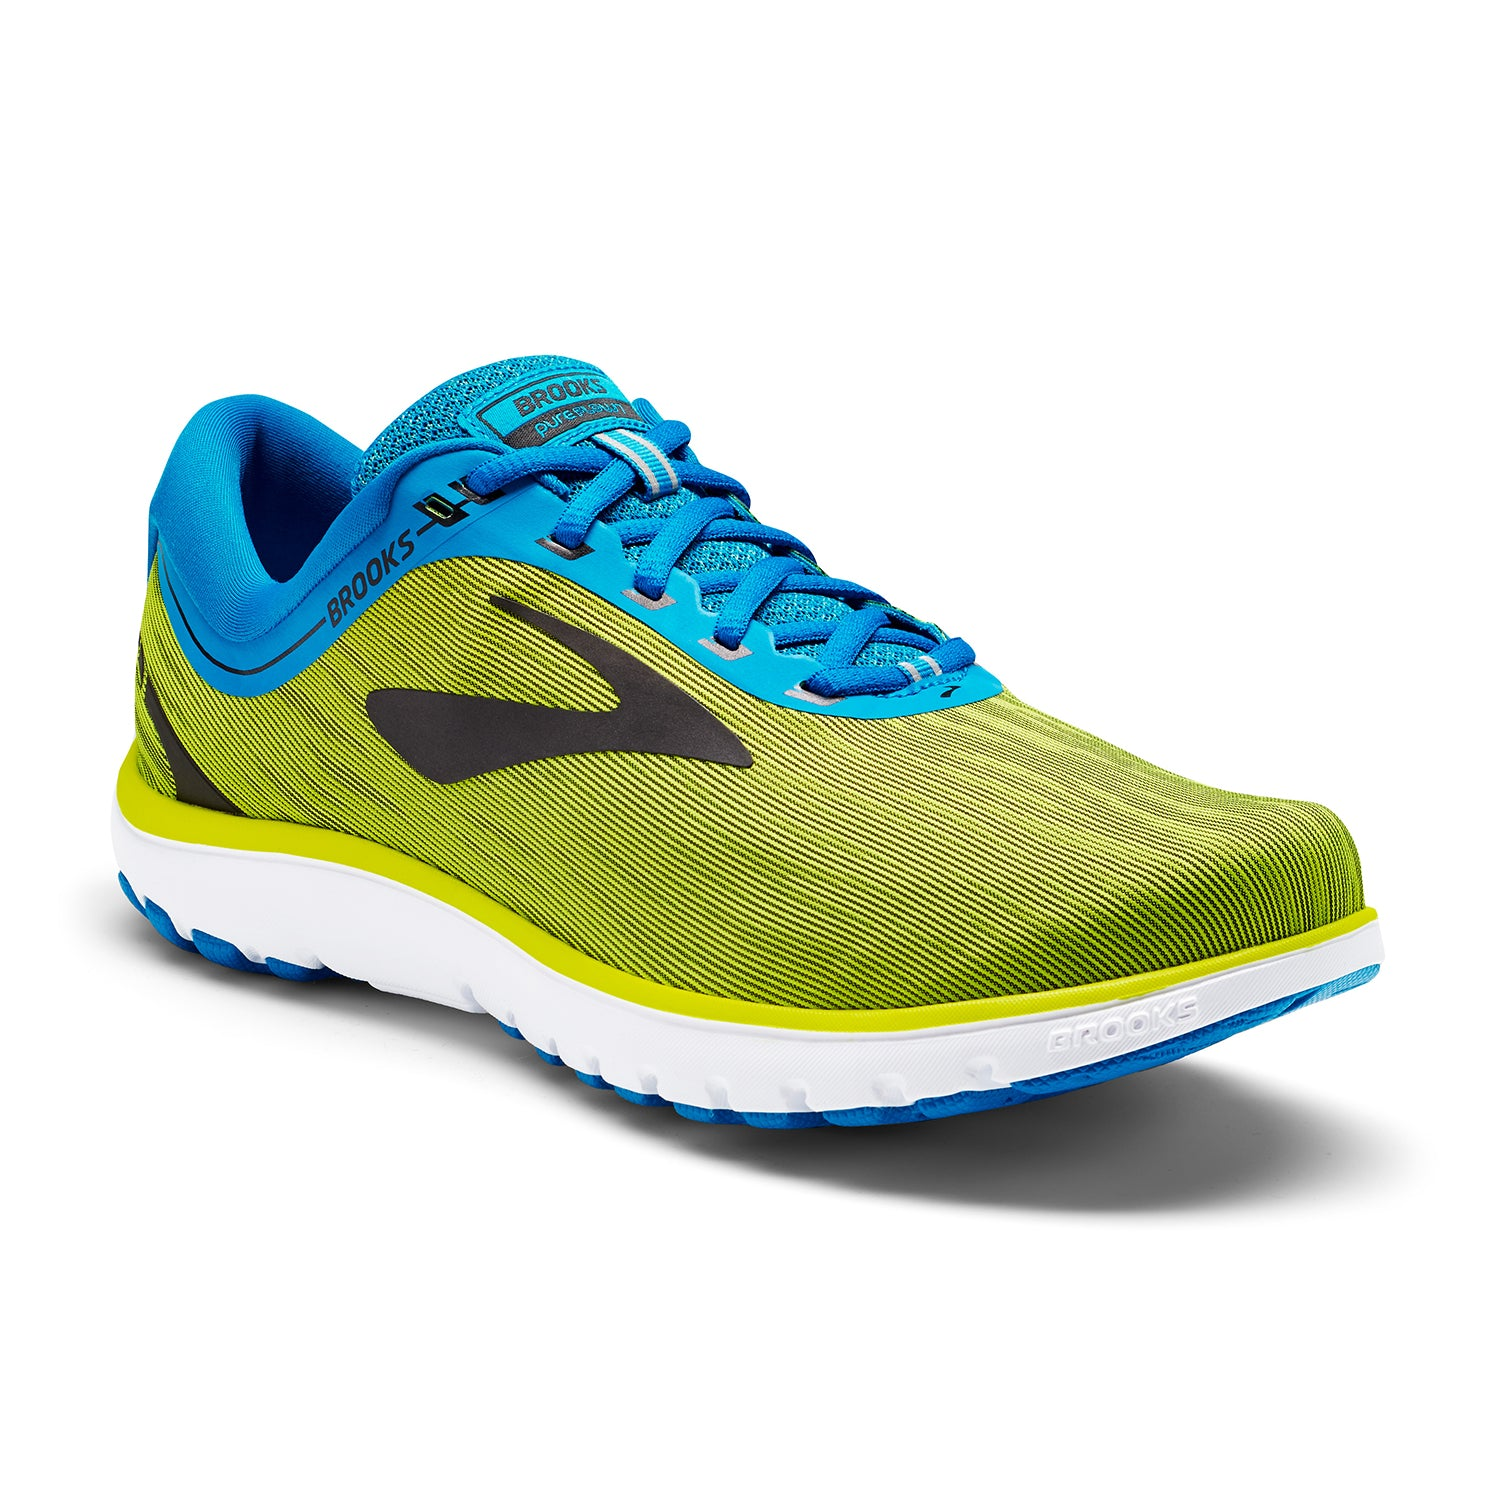 658a31ab729 ... Brooks Pureflow 7 Mens